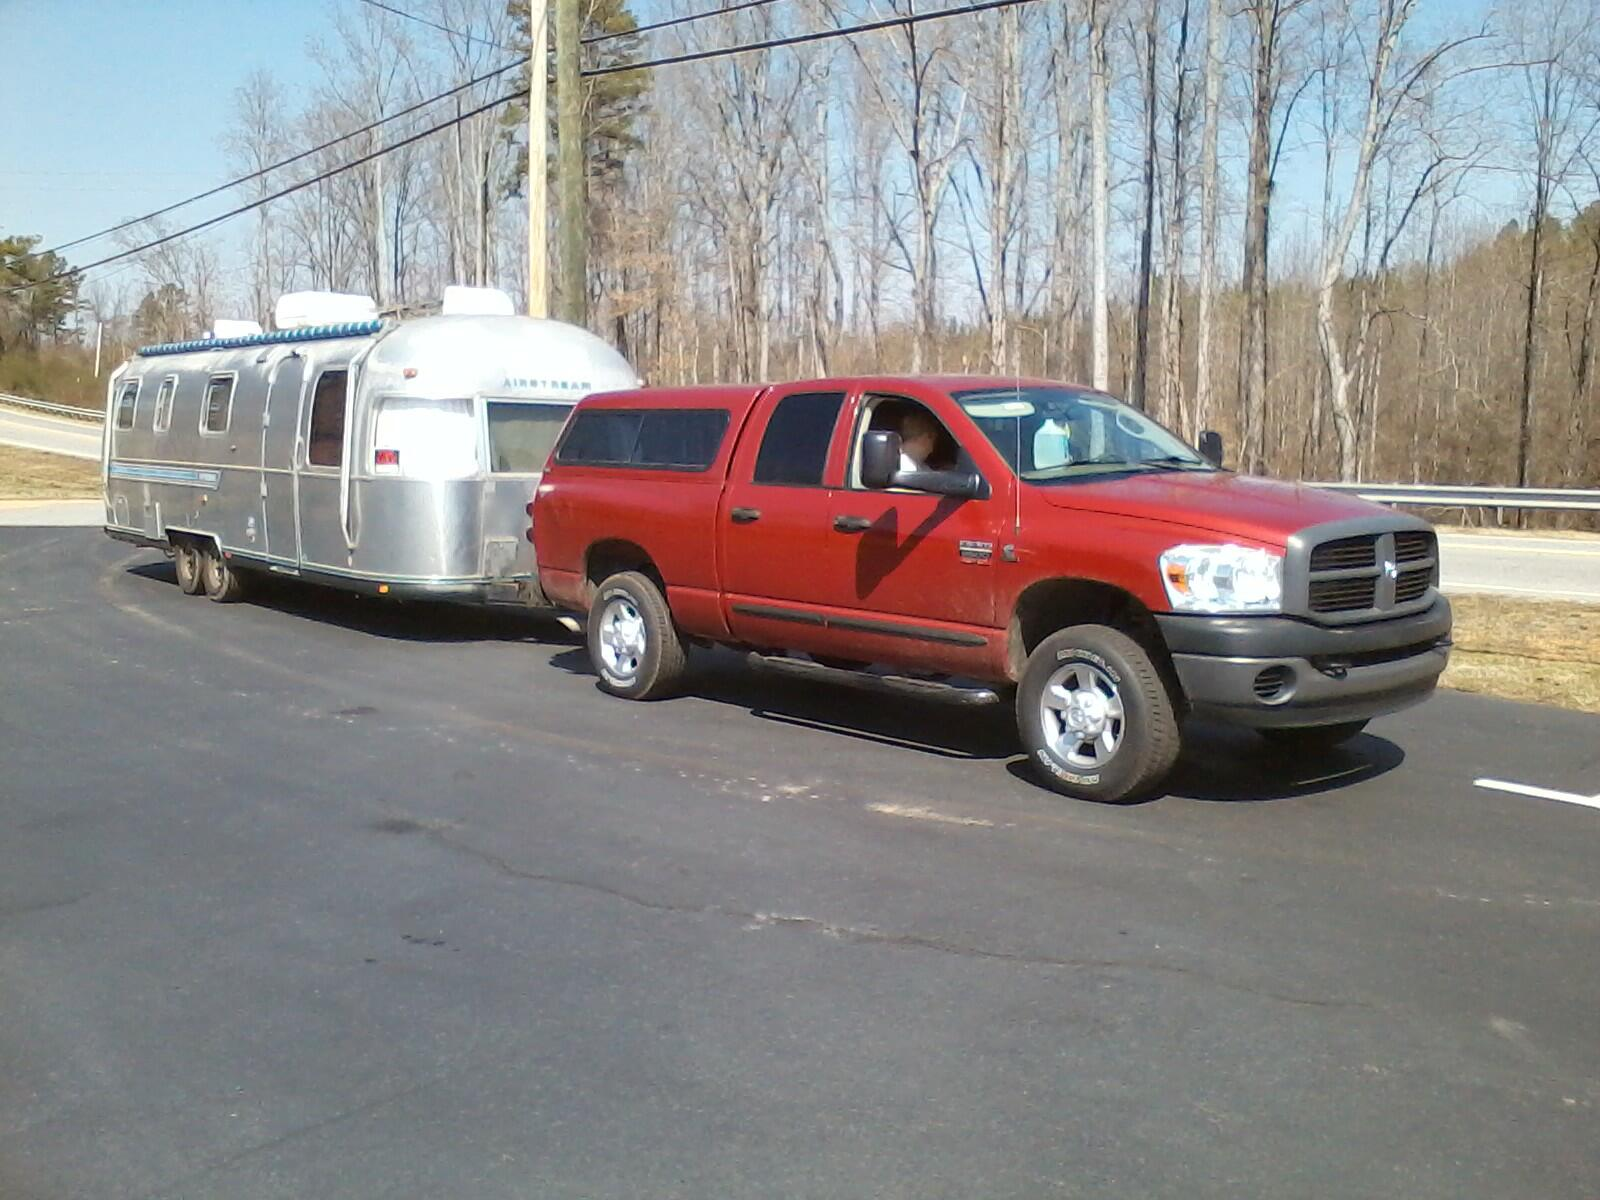 Click image for larger version  Name:Dode-Airstream-EnrouteToAlumalina-1600.jpg Views:46 Size:209.8 KB ID:181071